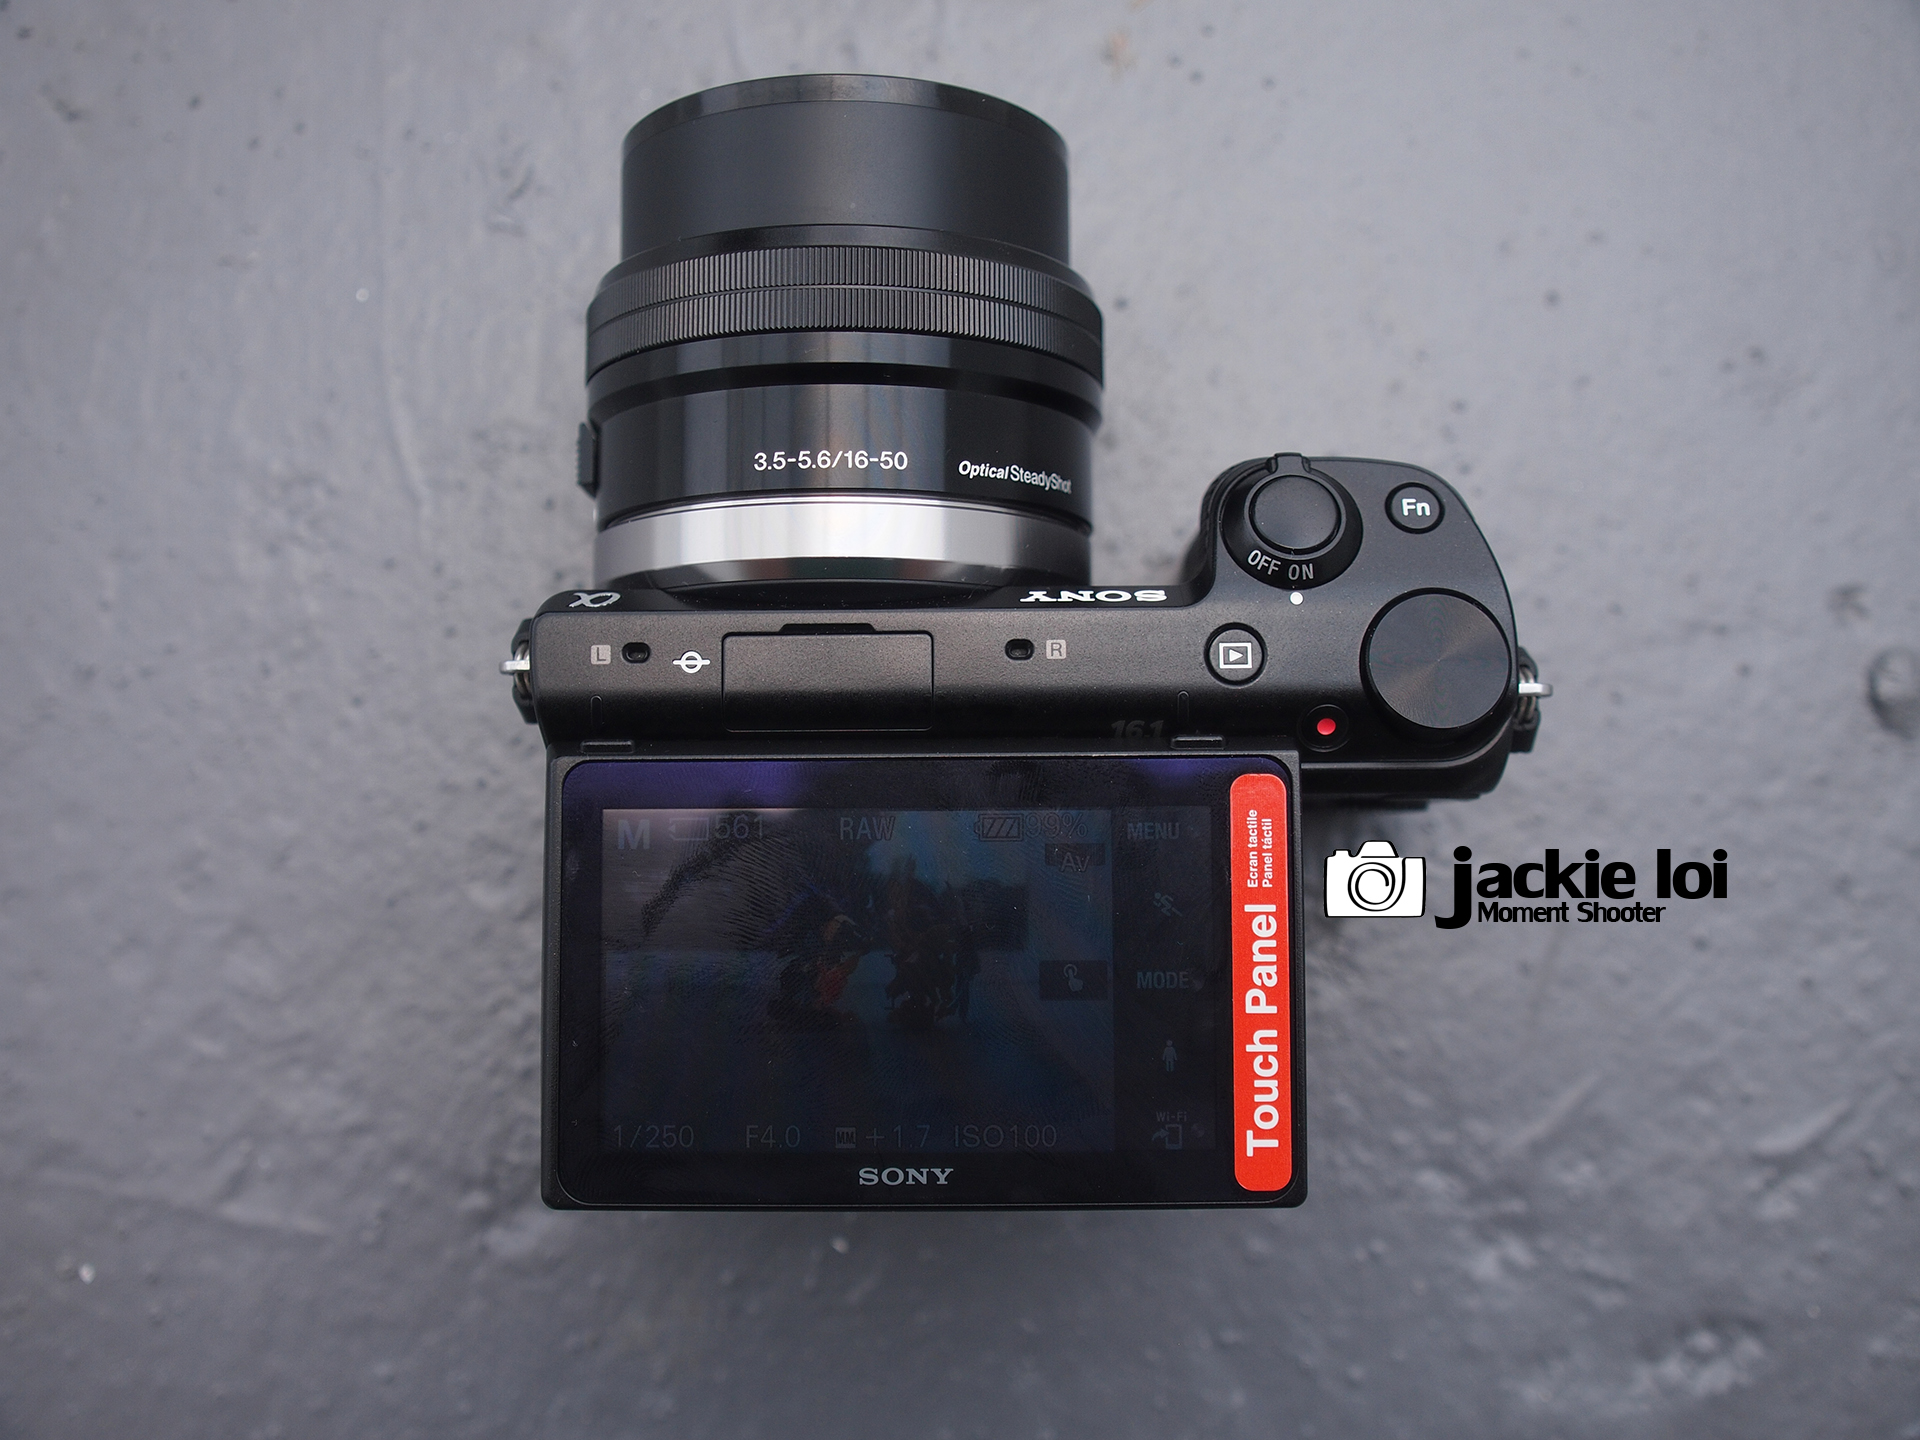 Dark Sony Sony Alpha Review A Journey Called Jloi Sony Nex 5t Firmware Sony Nex 5tl Degree Tiltable Or Youcan Do Low Angle Sony Come Even Self Portrait dpreview Sony Nex 5t